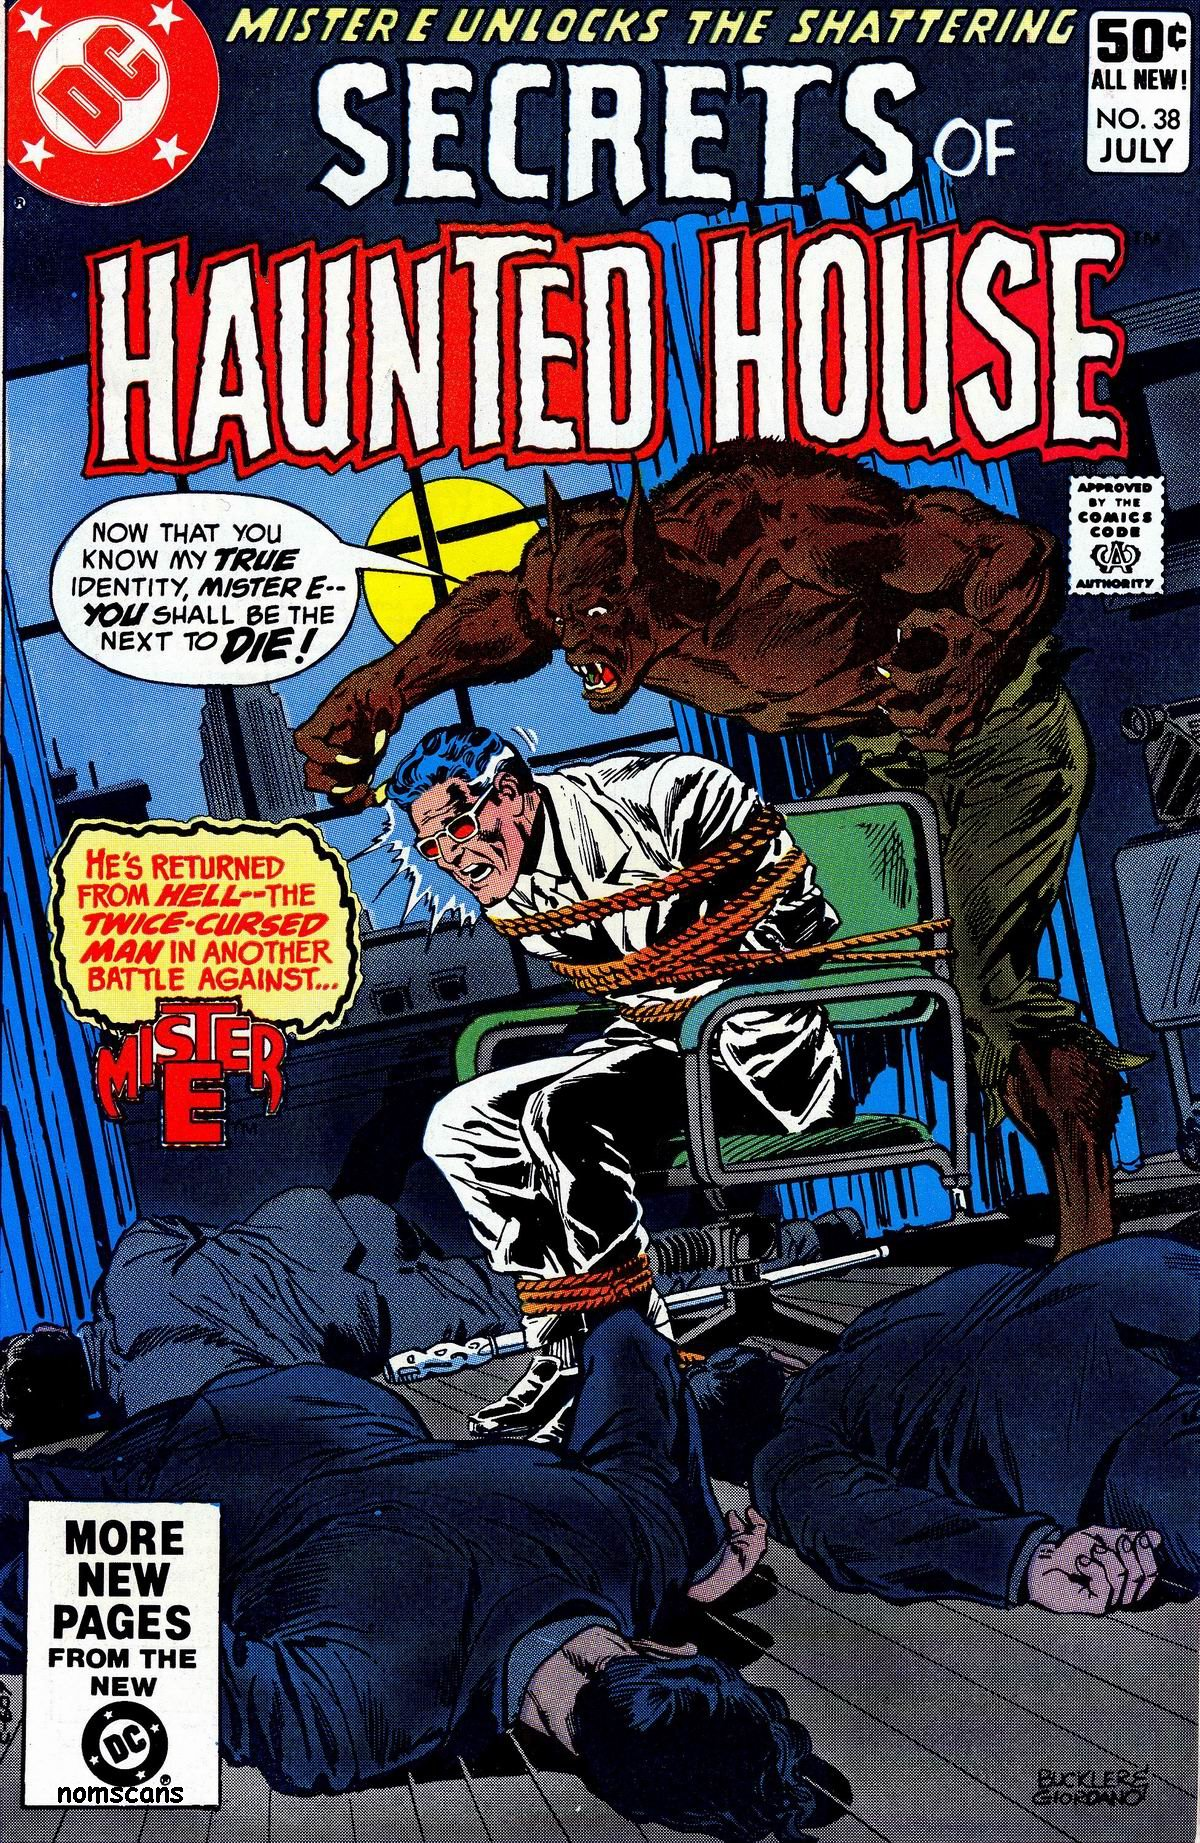 Read online Secrets of Haunted House comic -  Issue #38 - 1